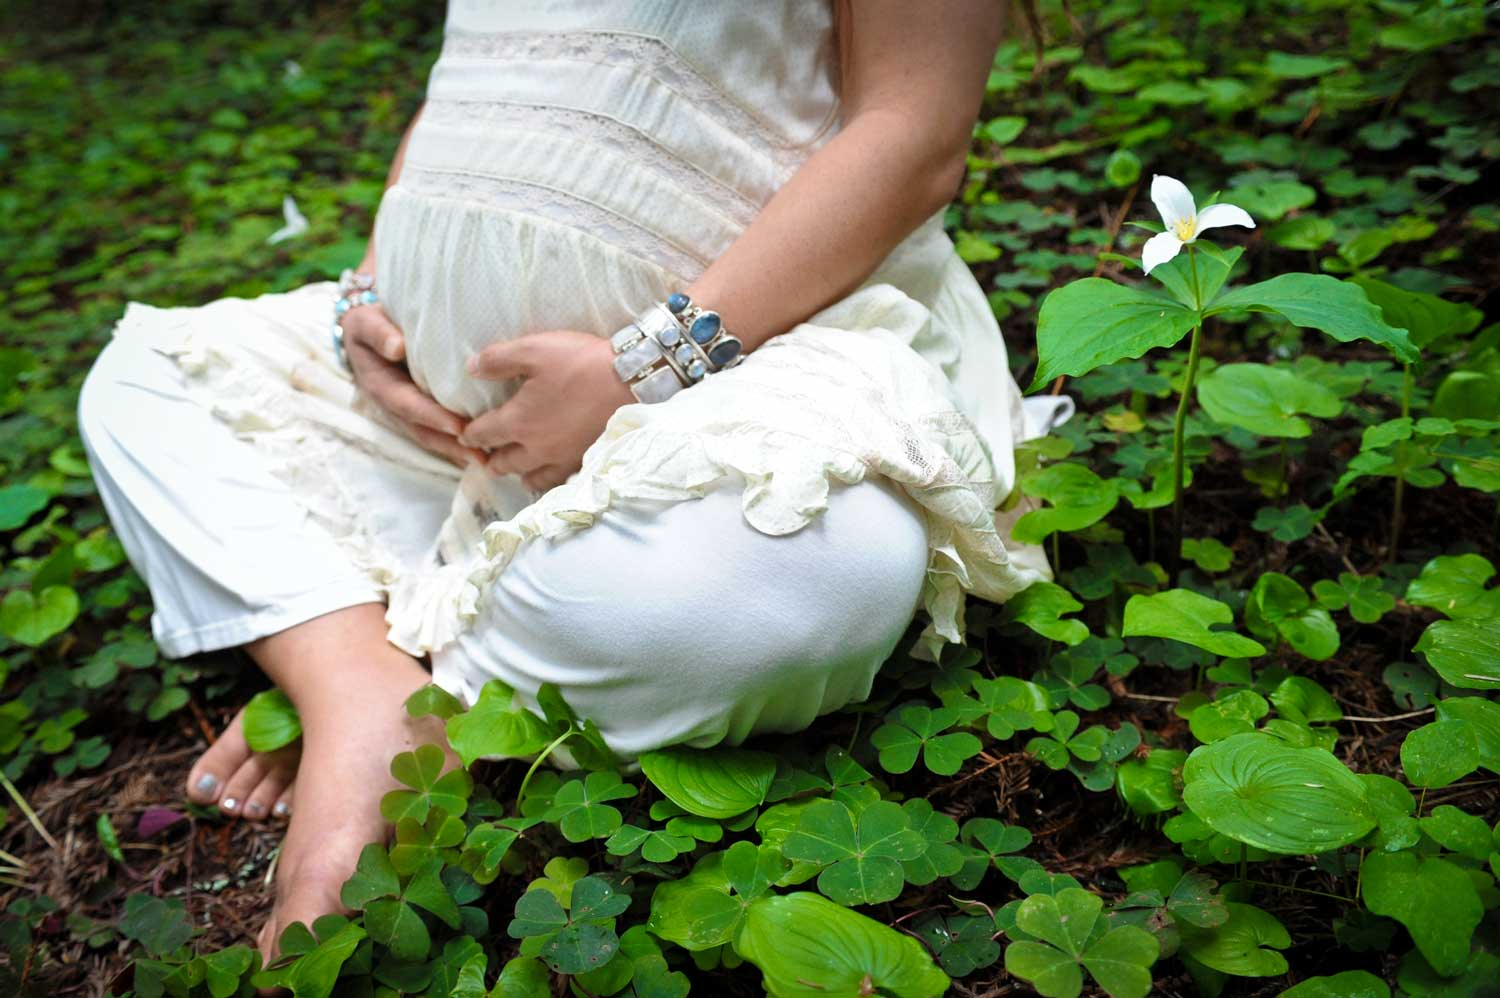 Photo of a pregnant woman in a white dress sitting amongst clover and trillium.